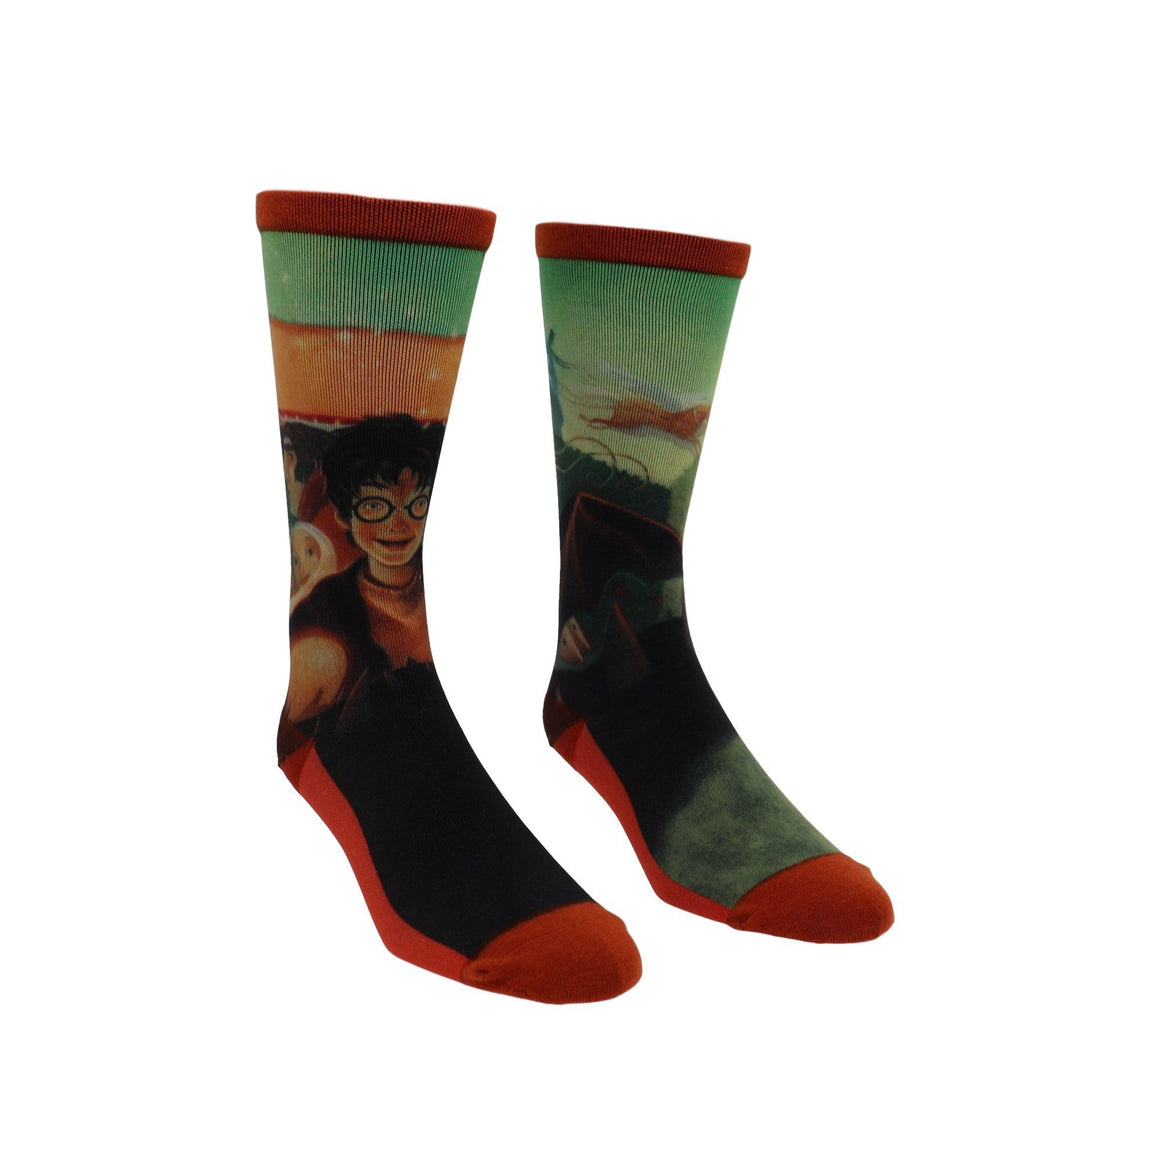 Harry Potter and the Goblet of Fire Socks - Large by Out Of Print - The Sock Spot